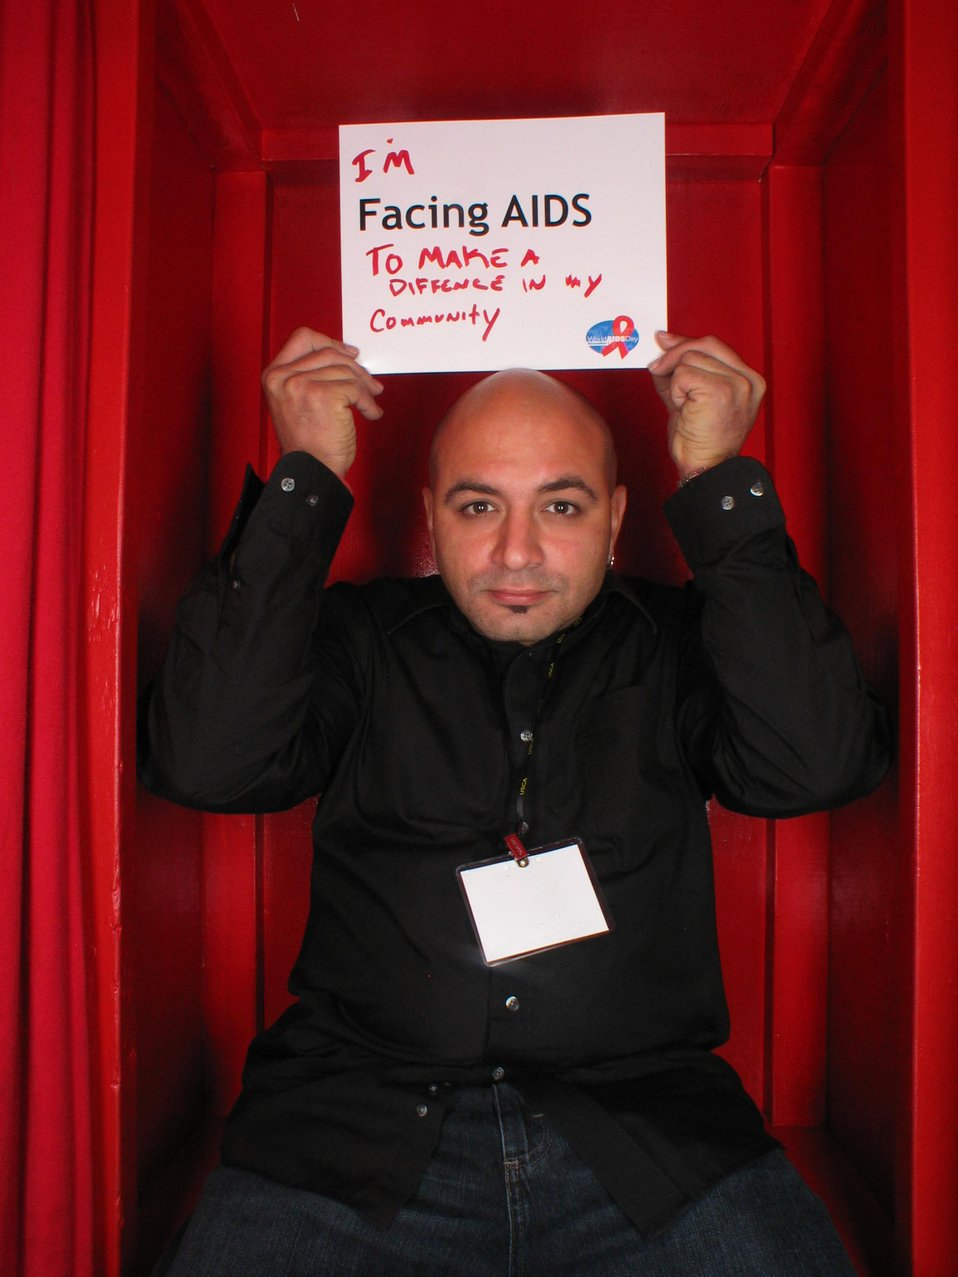 I'm Facing AIDS to make a difference in my community.